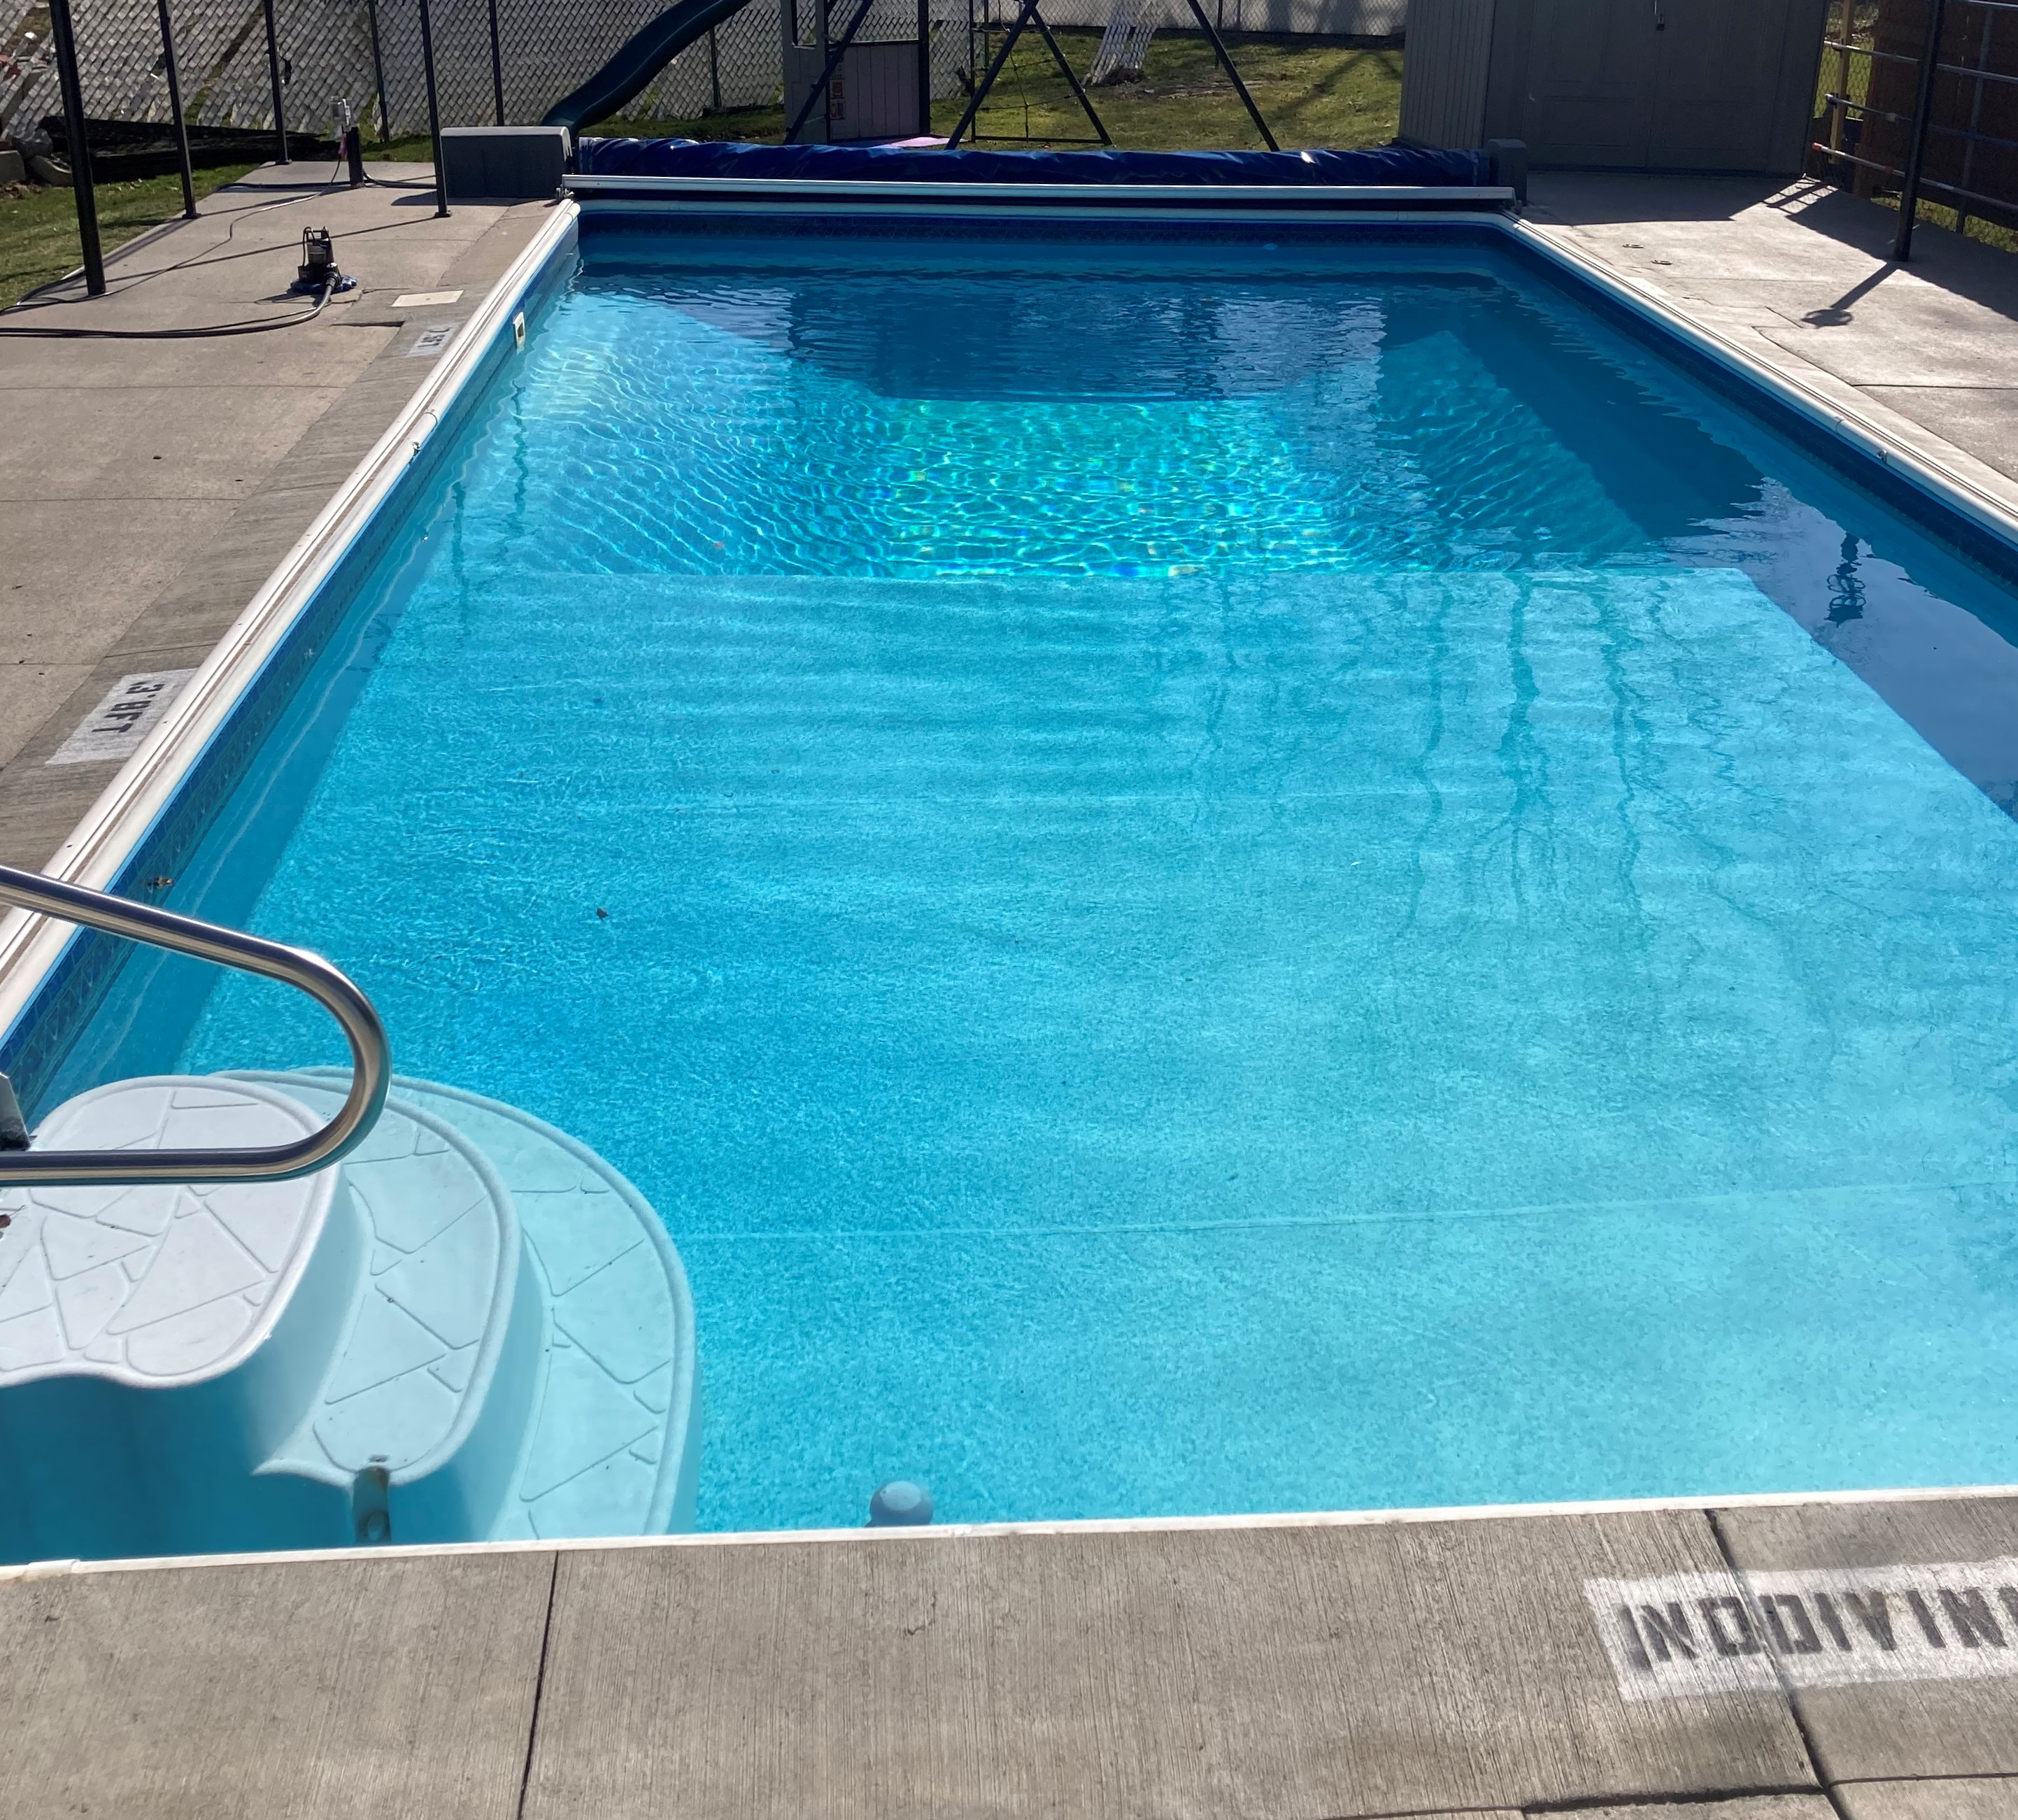 Pool with end coverings